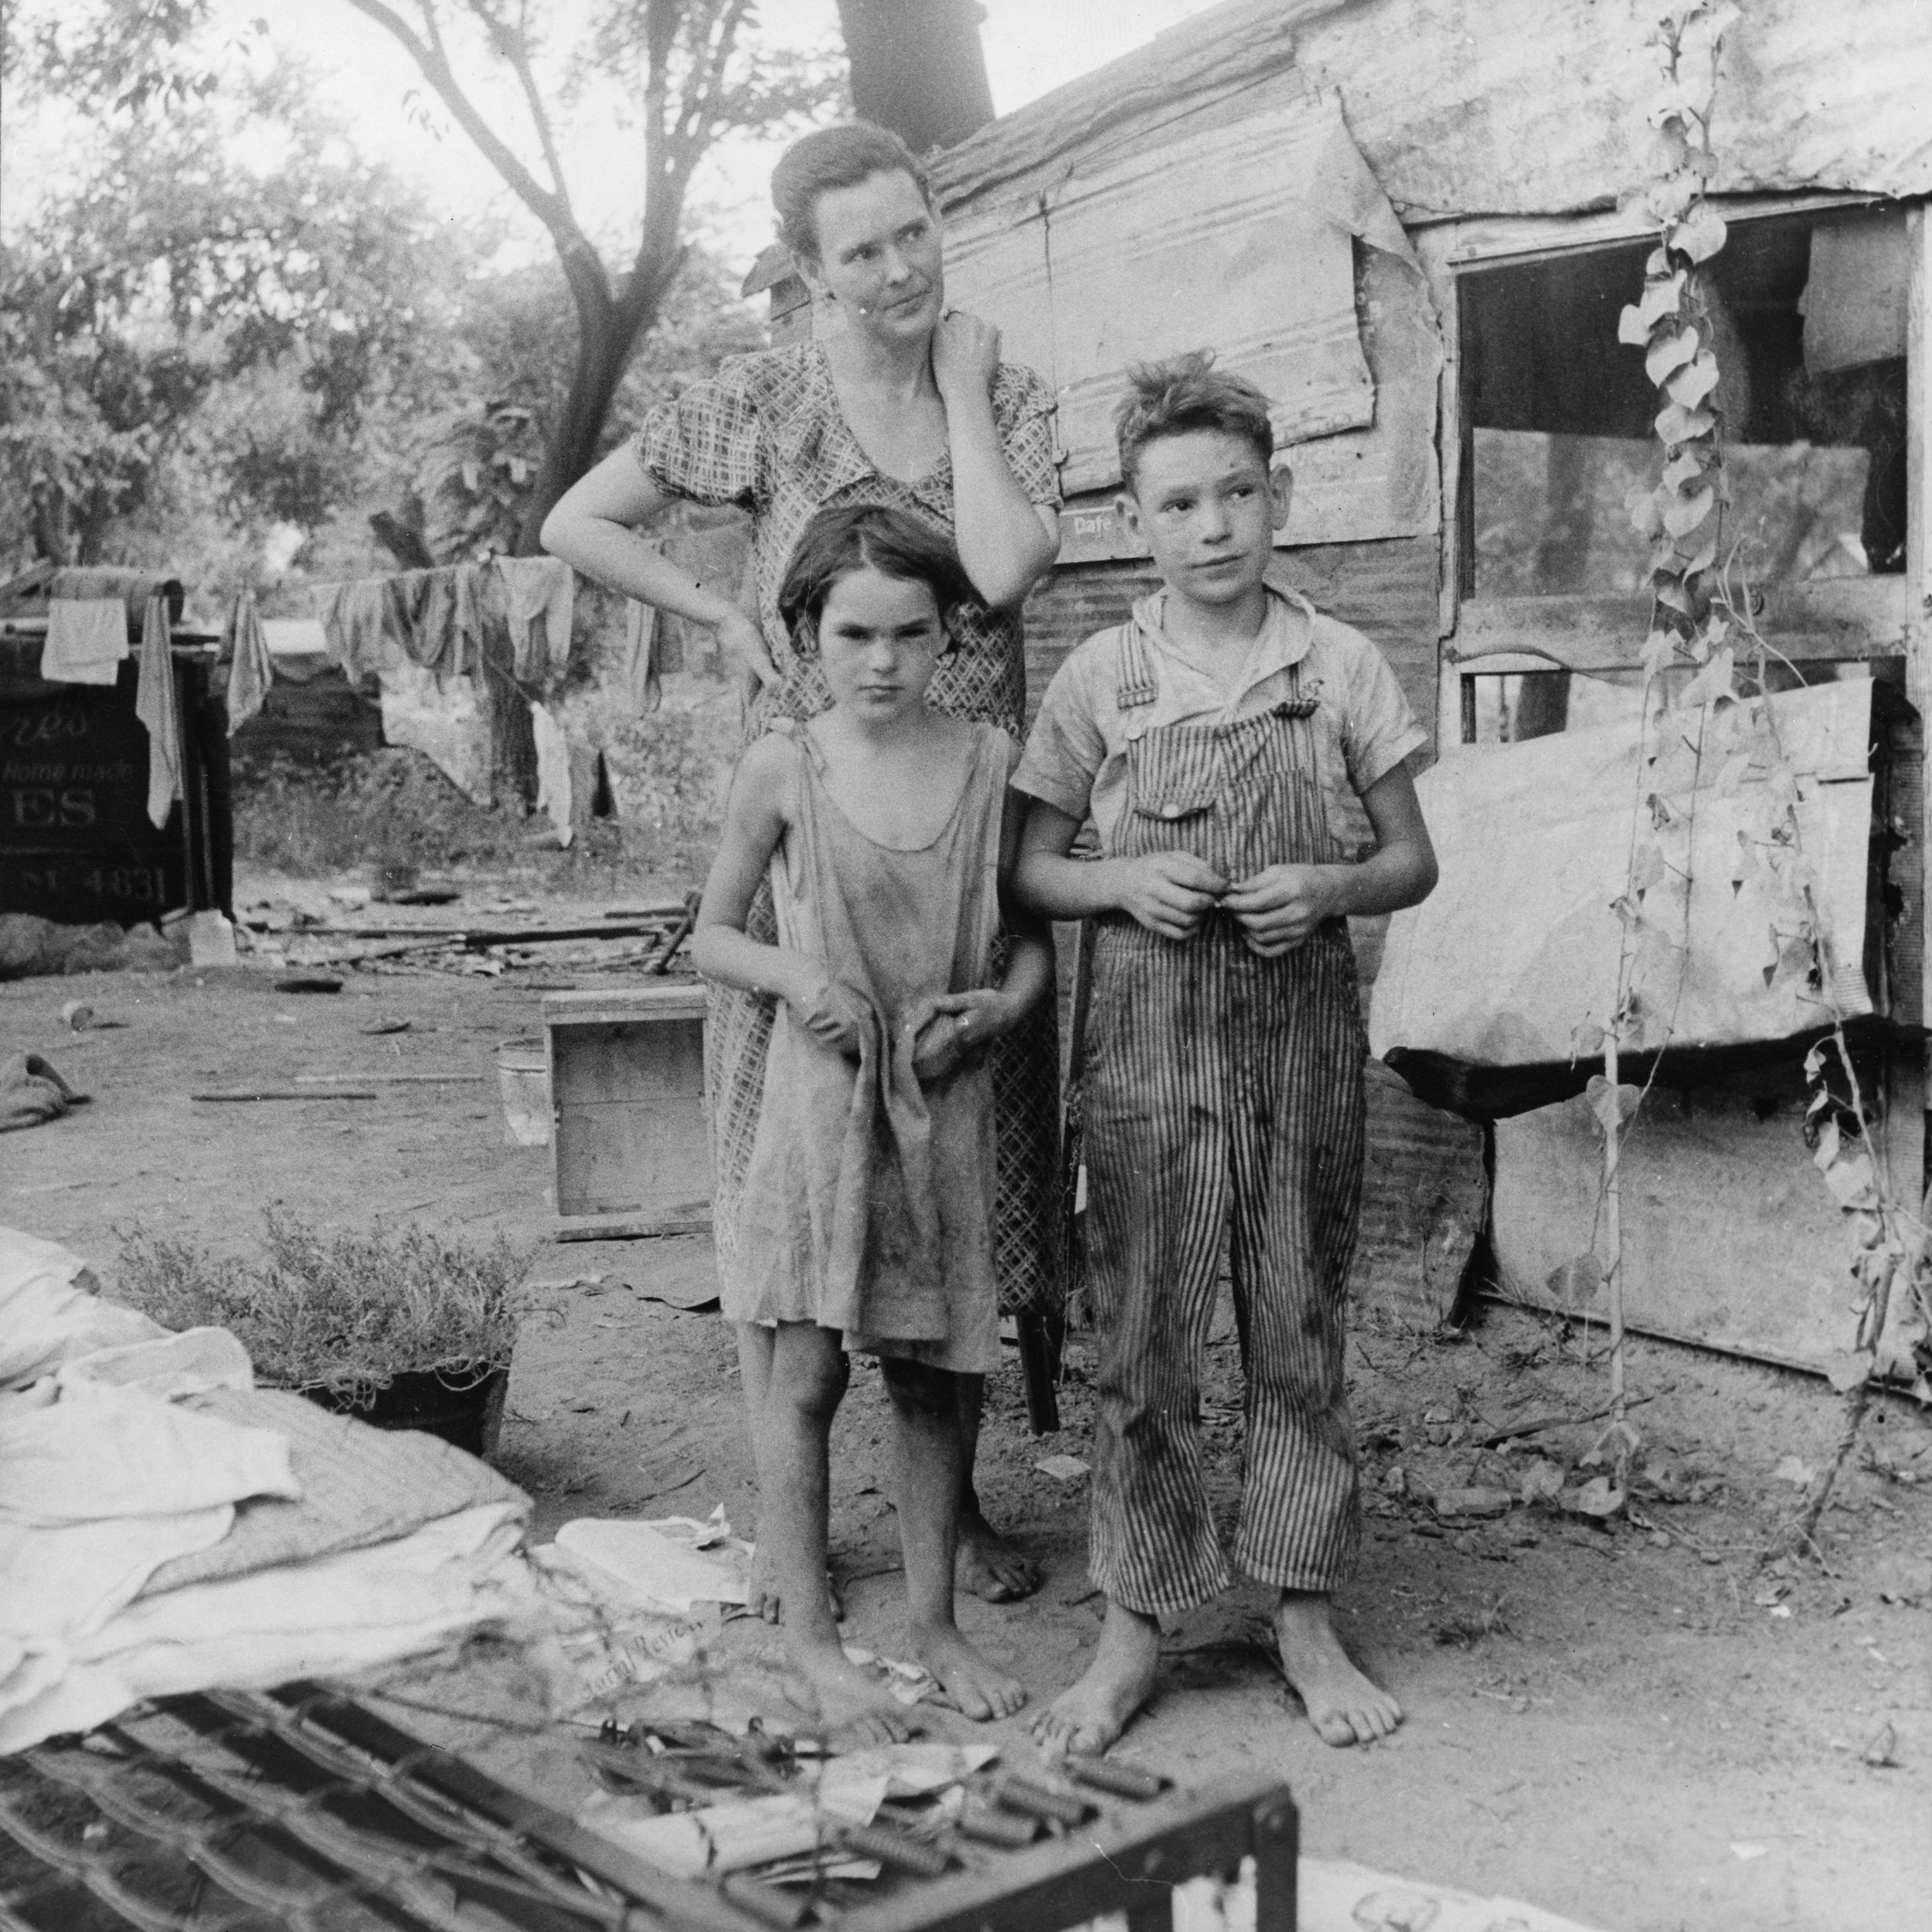 Poor_mother_and_children,_Oklahoma,_1936_by_Dorothea_Lange.jpg